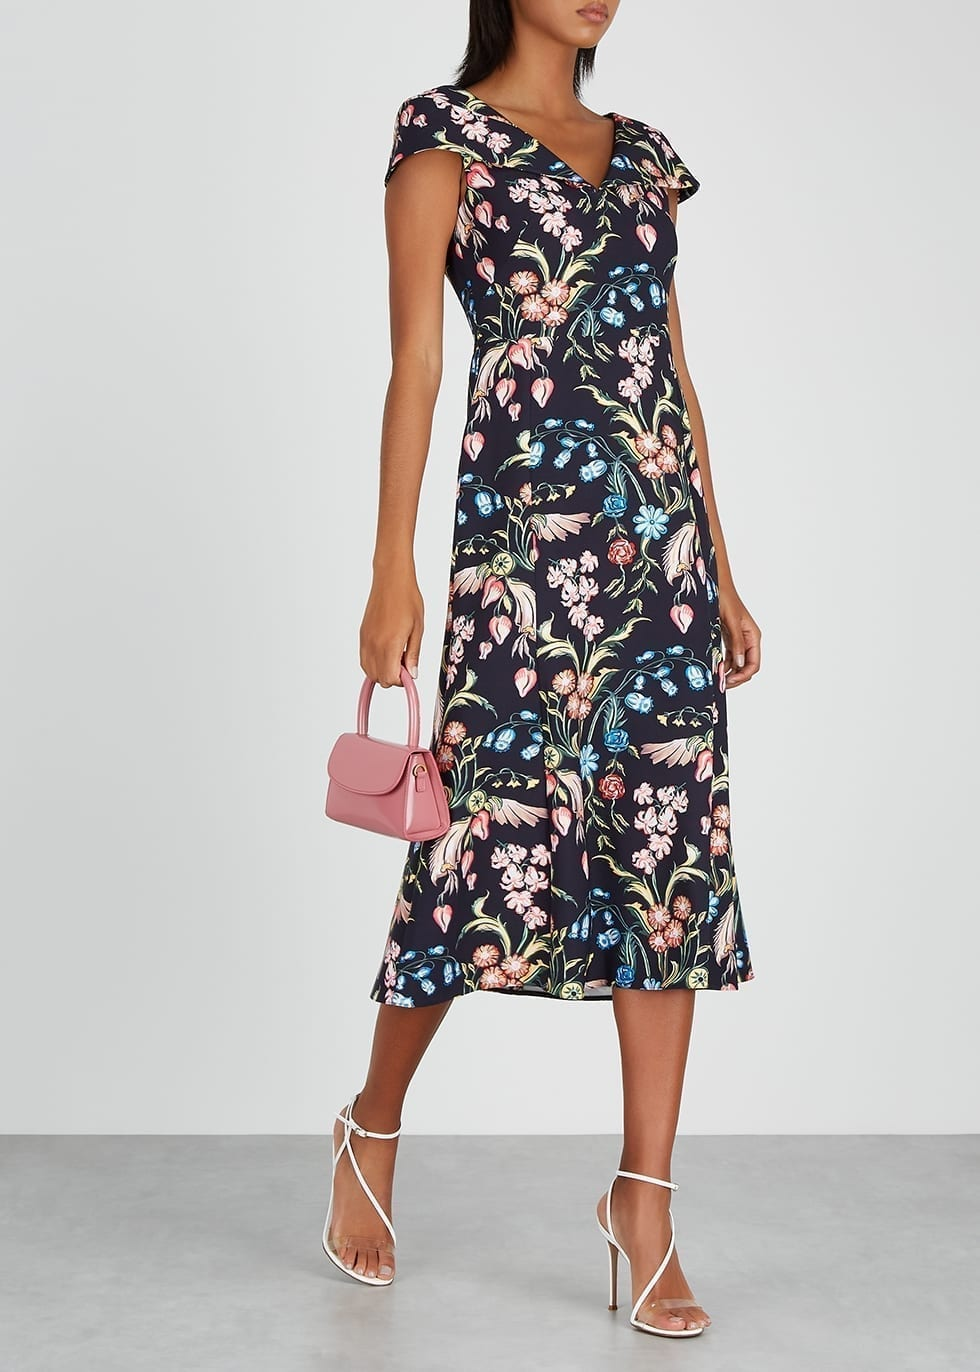 PETER PILOTTO Navy Floral-print Cady Dress